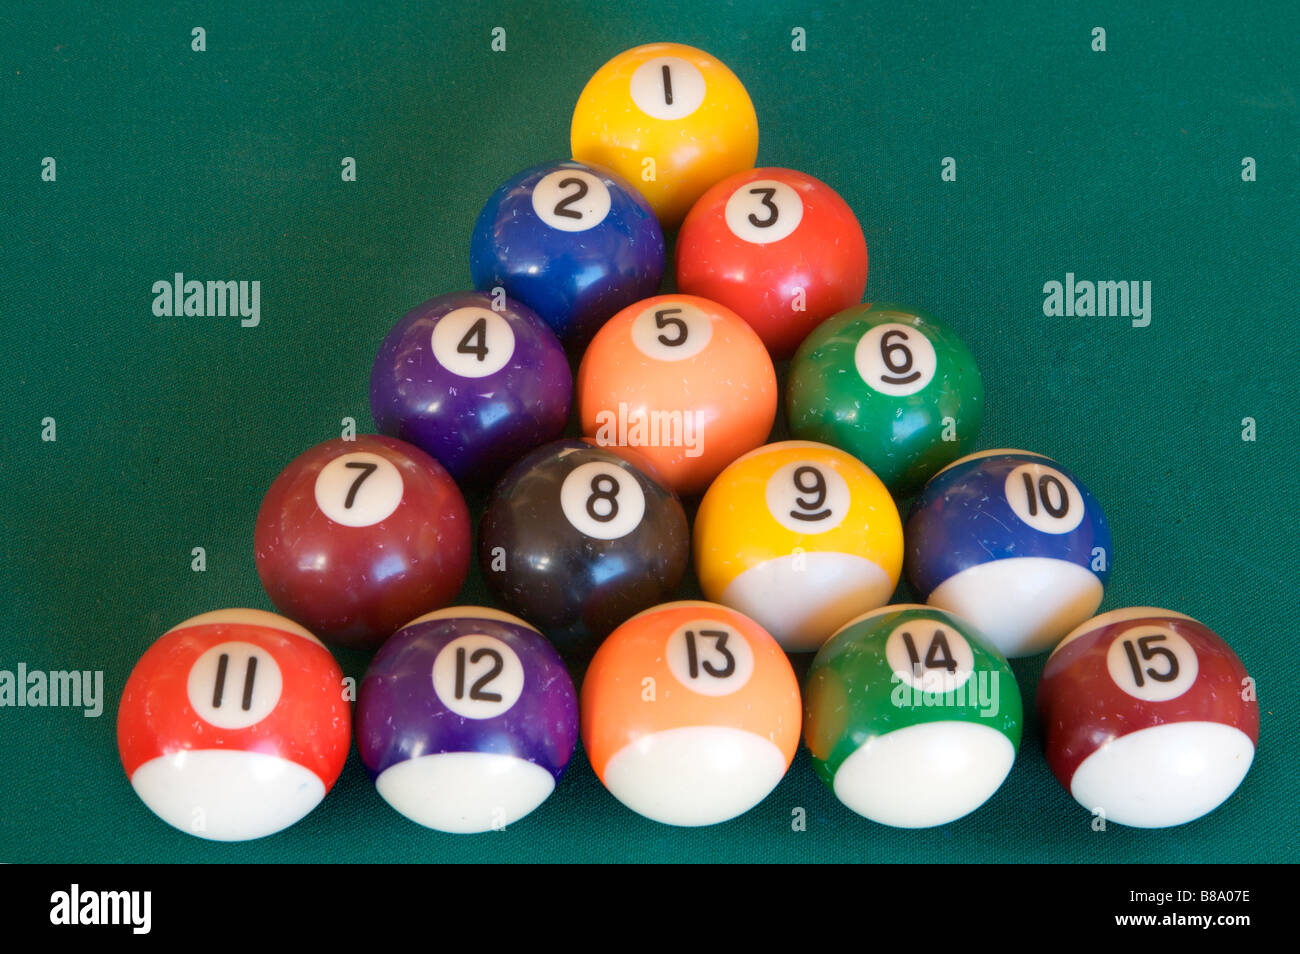 Billiard Table With Fifteen Balls Arranged As Triangle